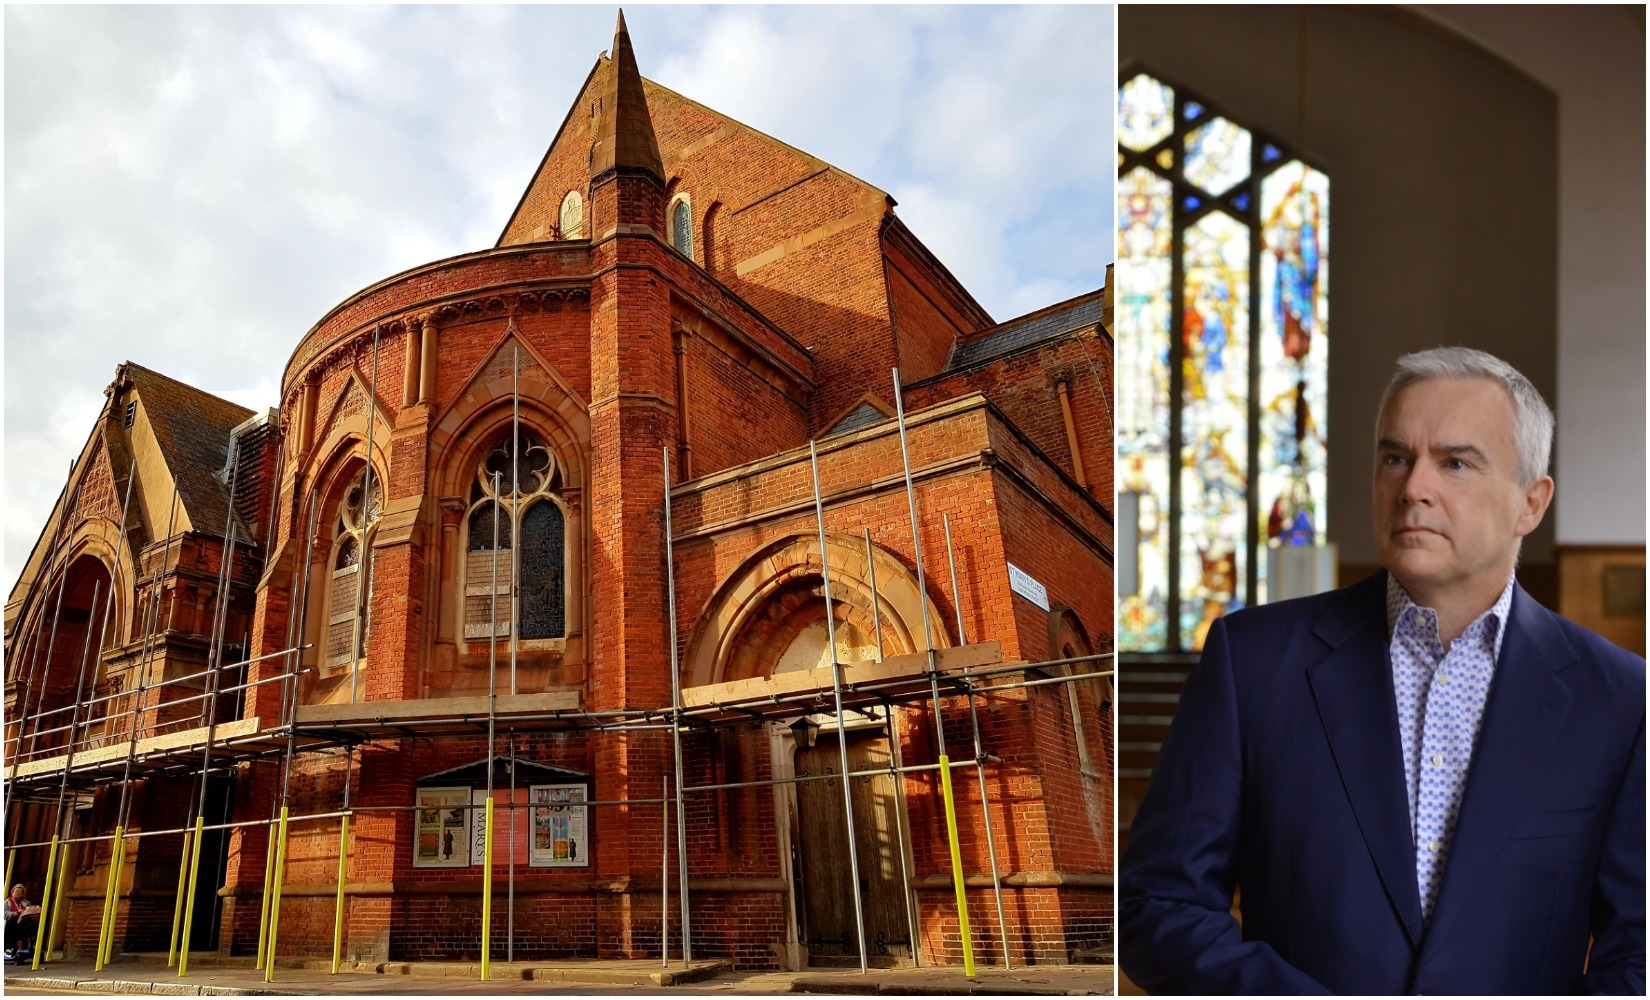 Urgent repairs funding for St Mary's Church, Kemp Town | The Argus